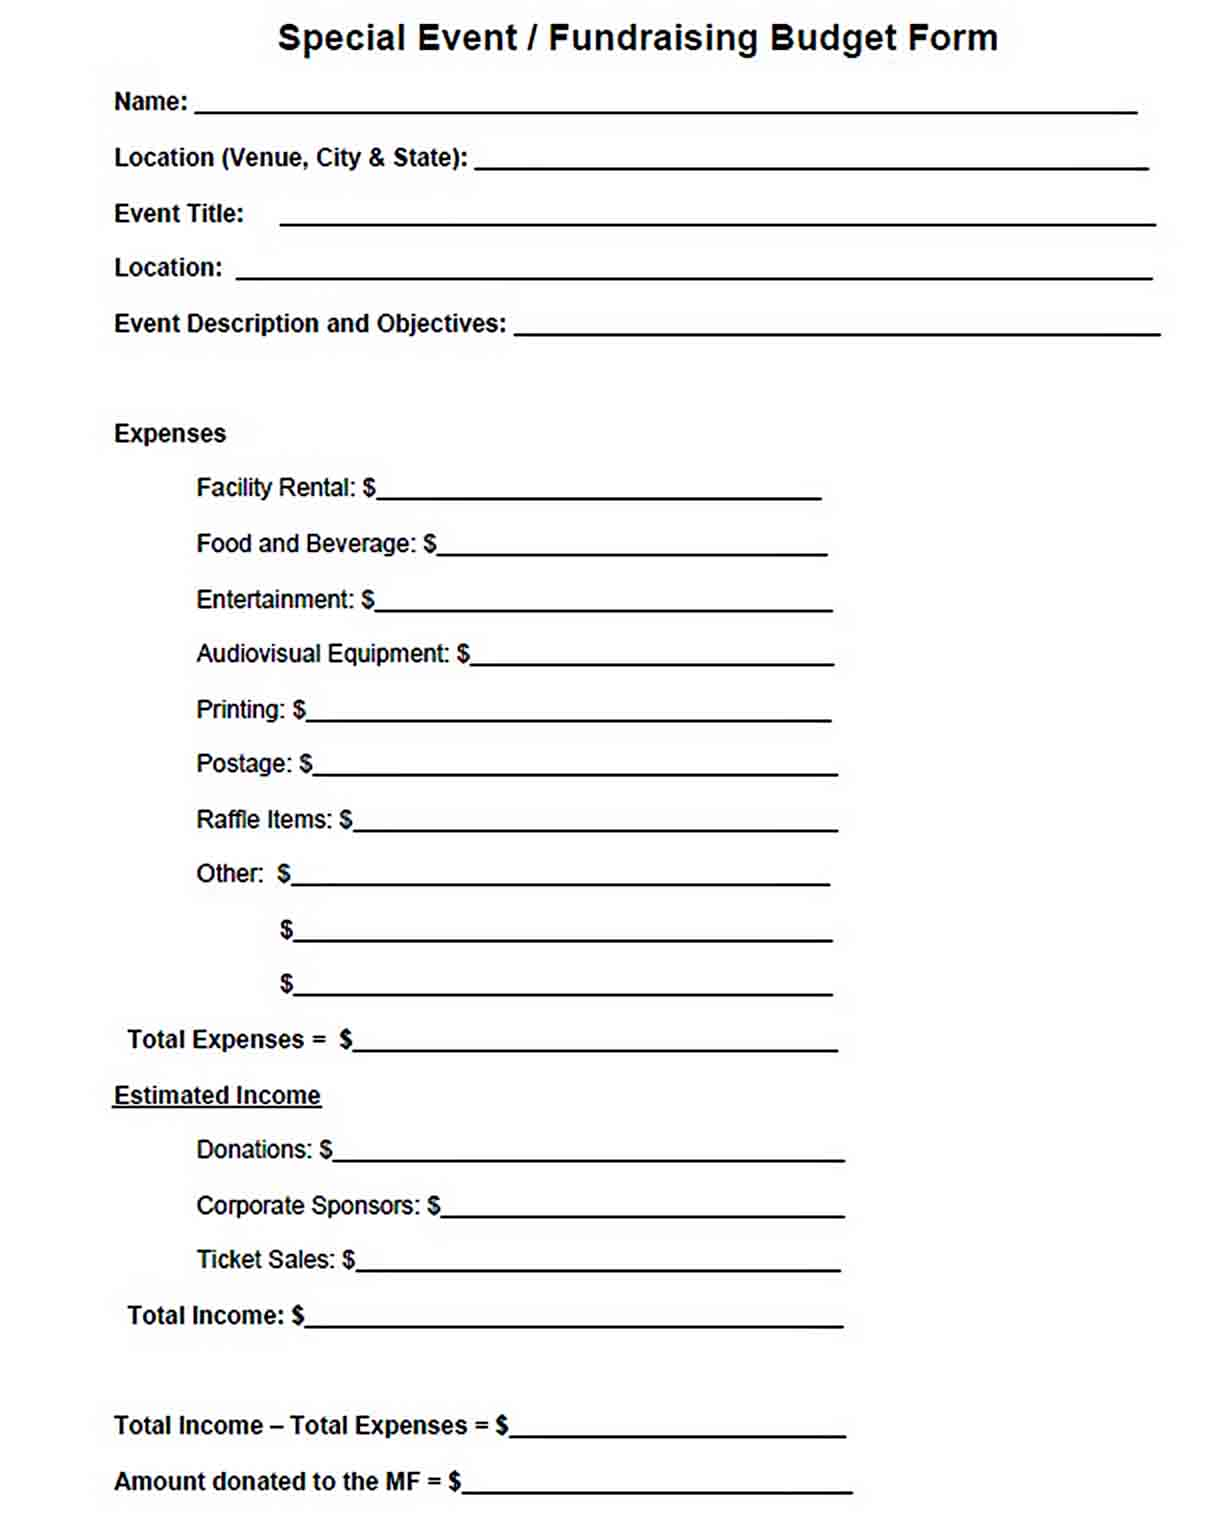 Special Event Fundraising Form sample